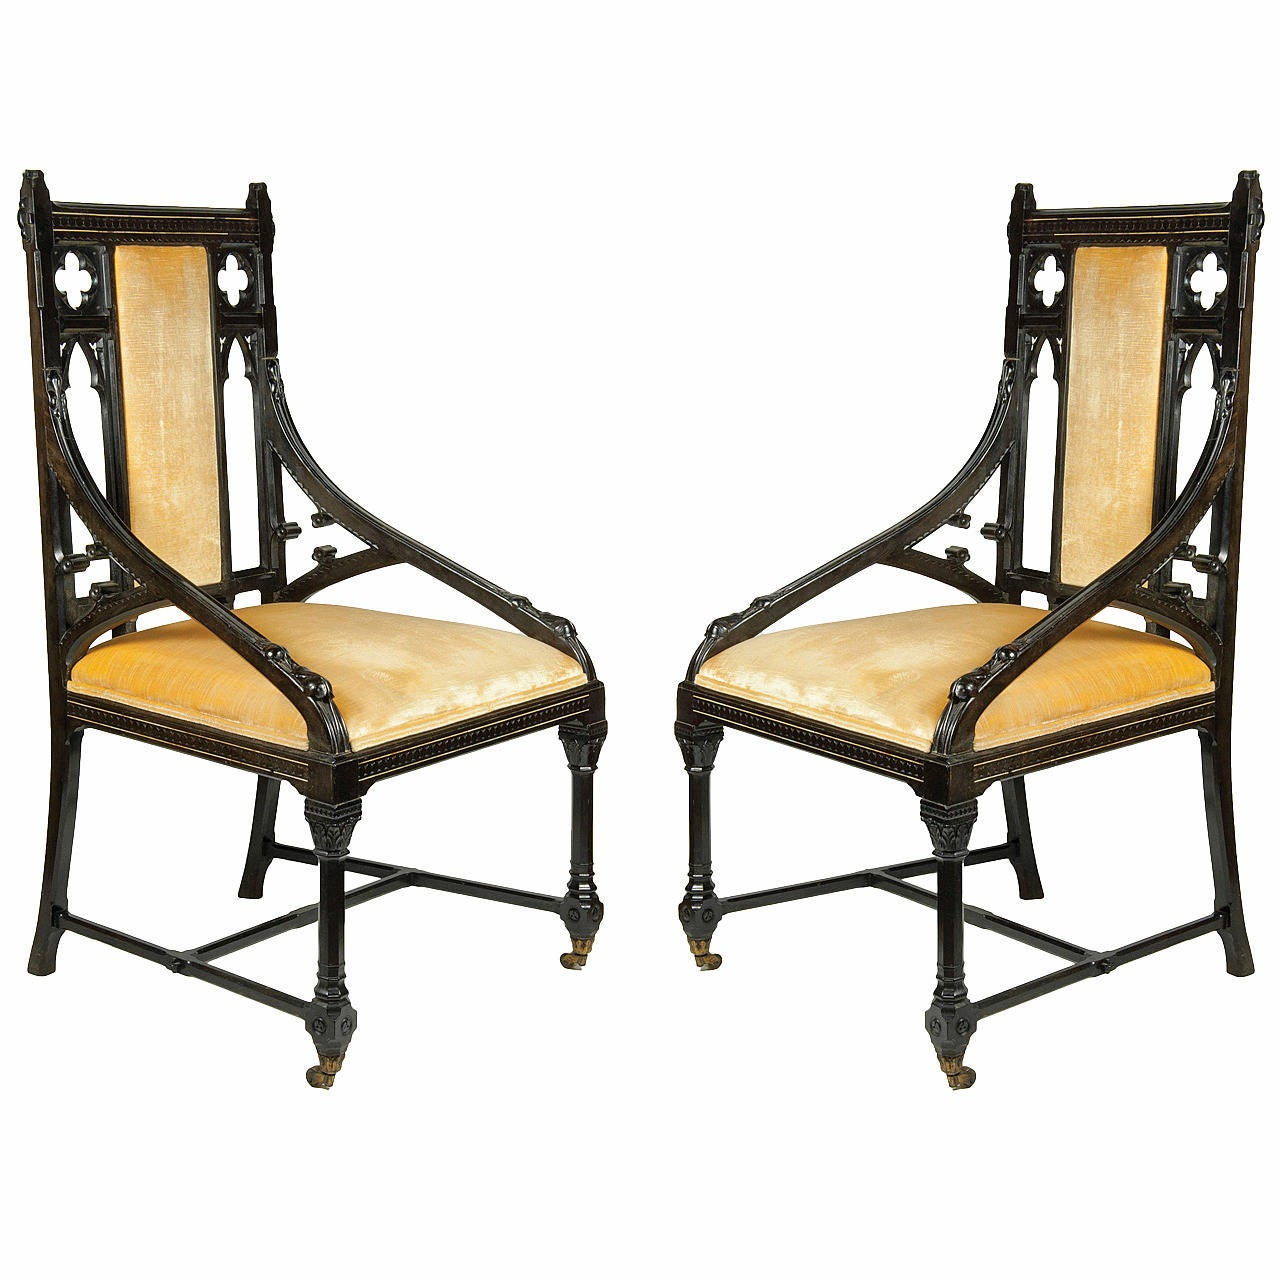 Splendid Pair of Gothic Revival Chairs, Ebony with Ivory Inlay, circa 1862